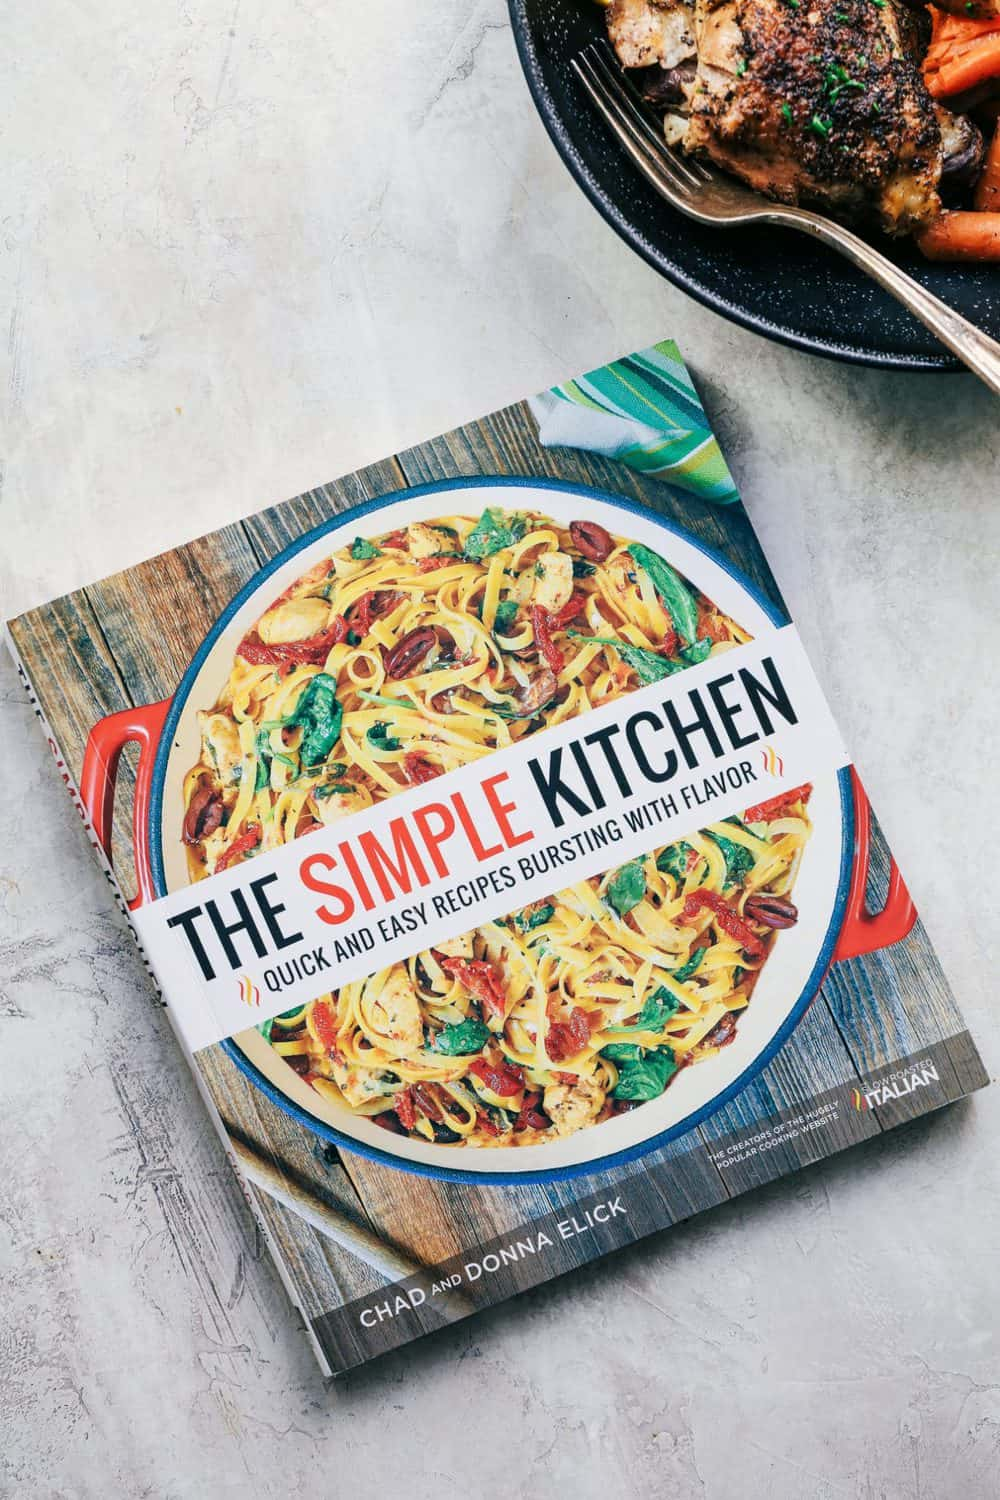 The Simple Kitchen cookbook.